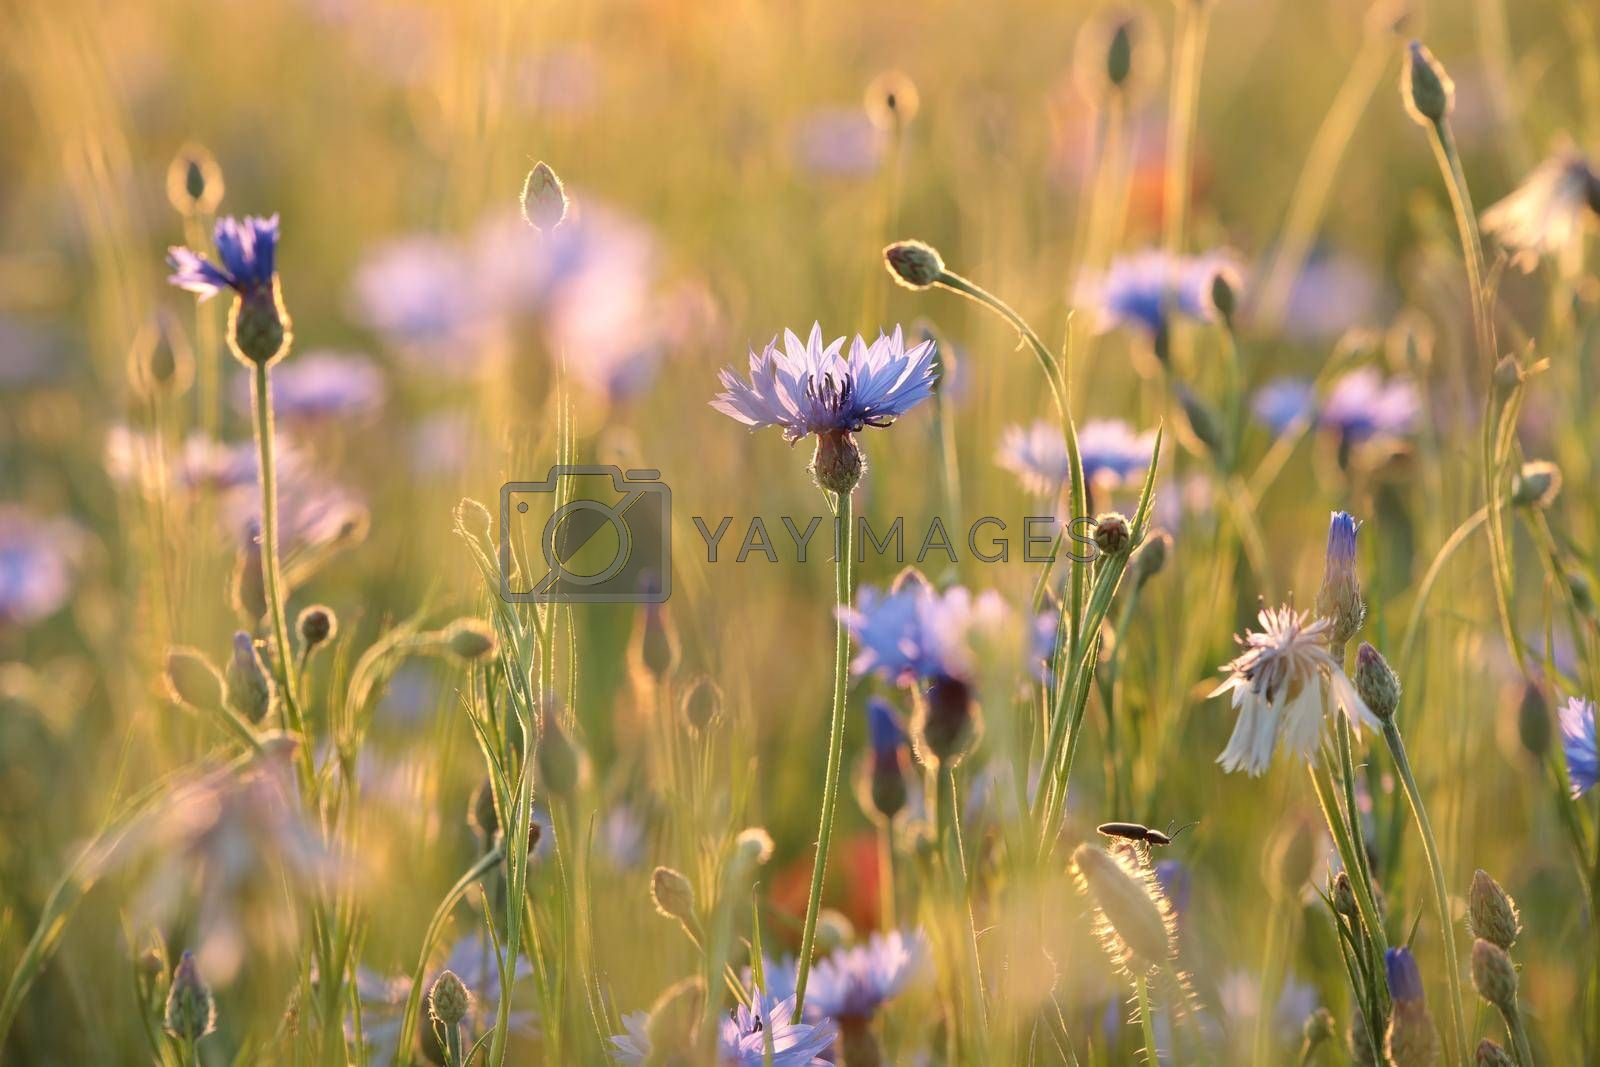 Cornflower in the field at dusk.